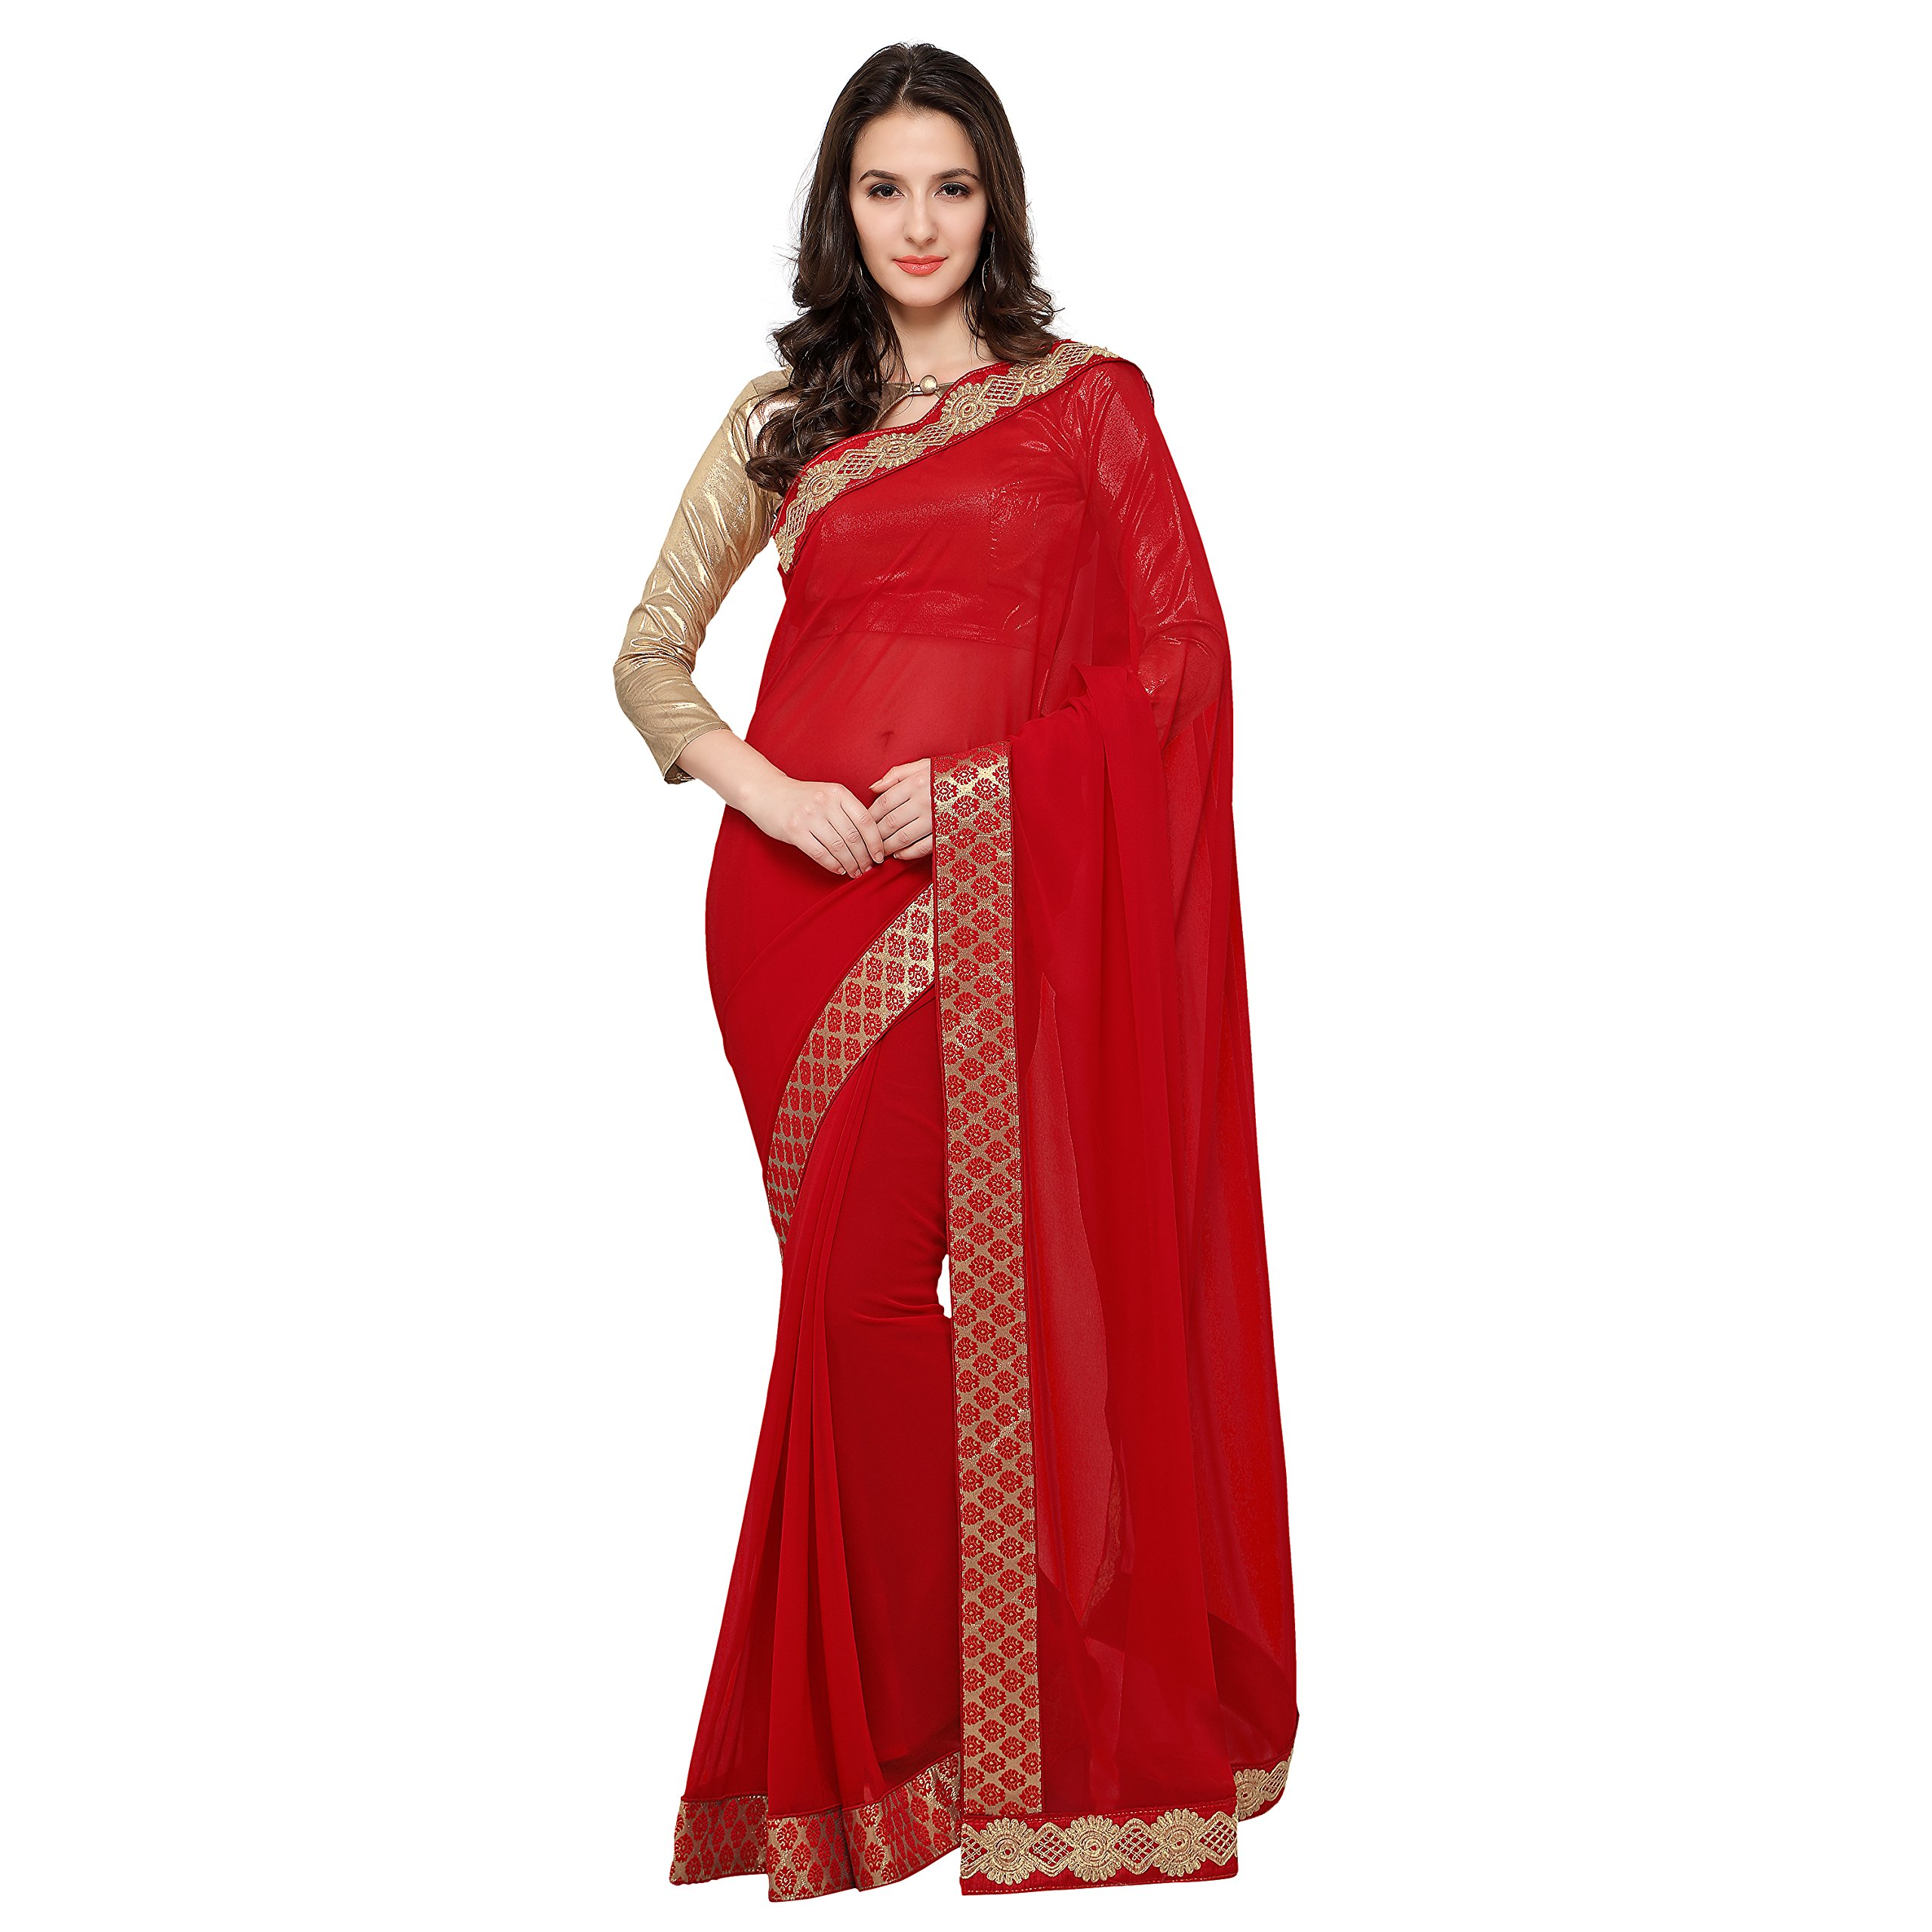 d96f5d6e86 Cheap Saree Border Online India, find Saree Border Online India ...